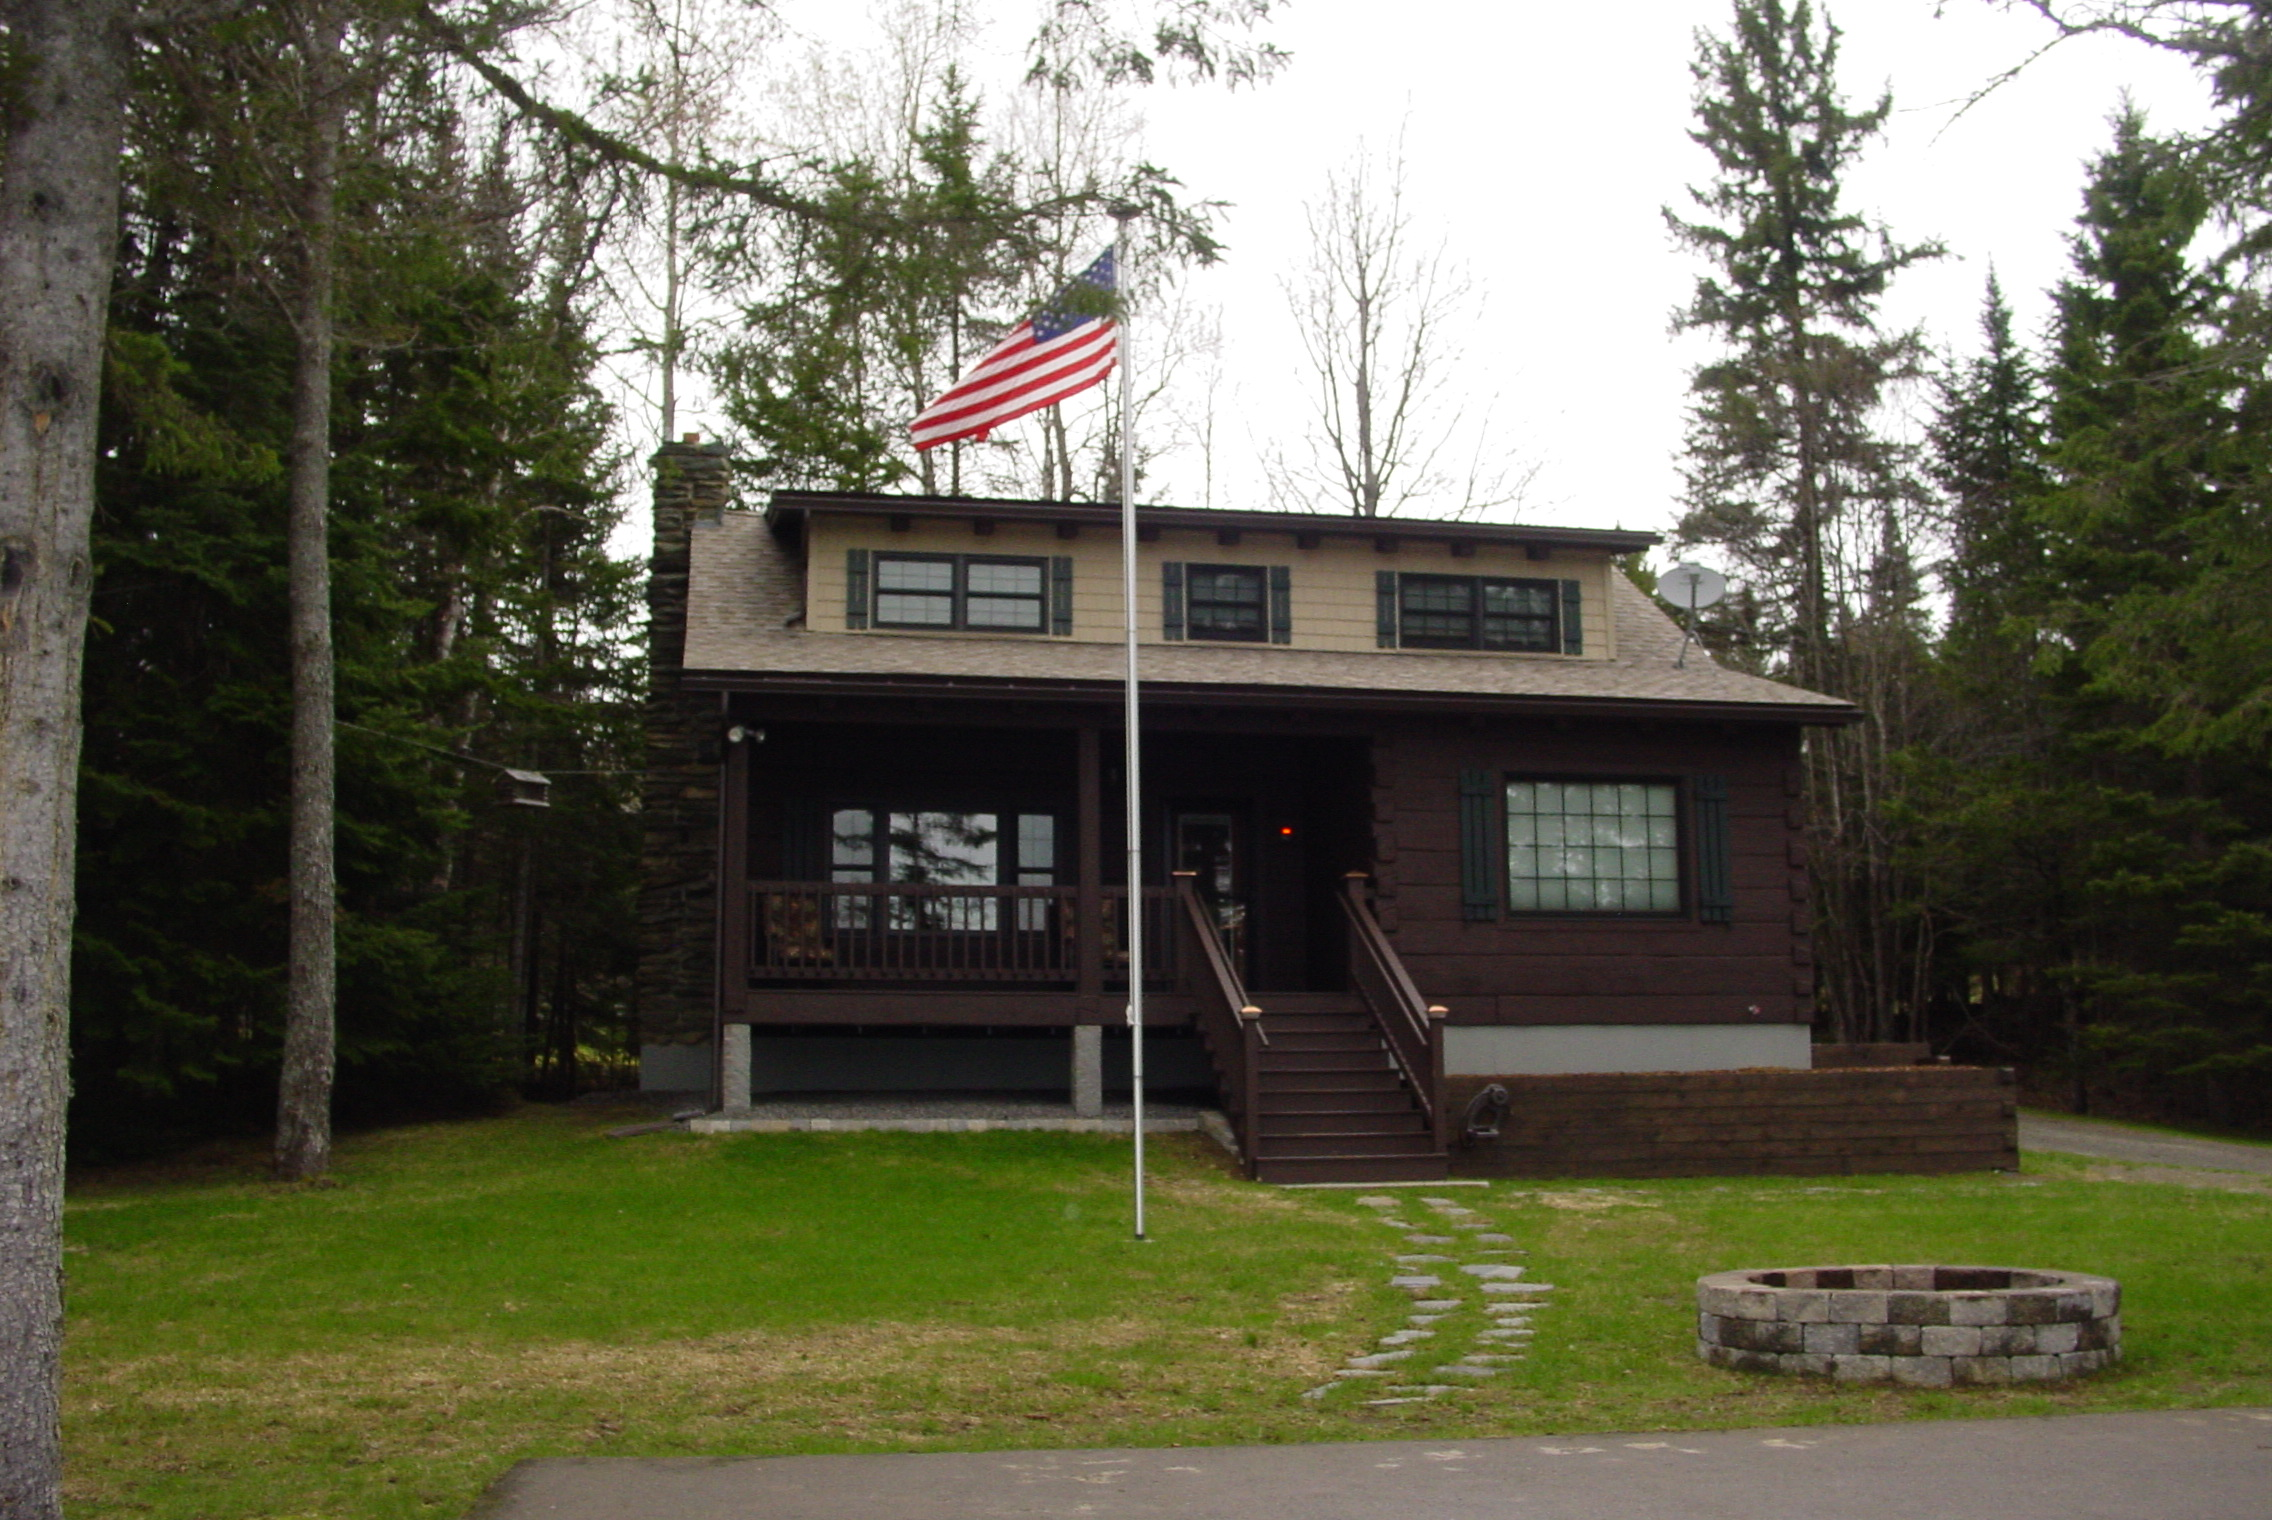 cabins trailside hb rentals nh cabin pittsburg rental accommodation